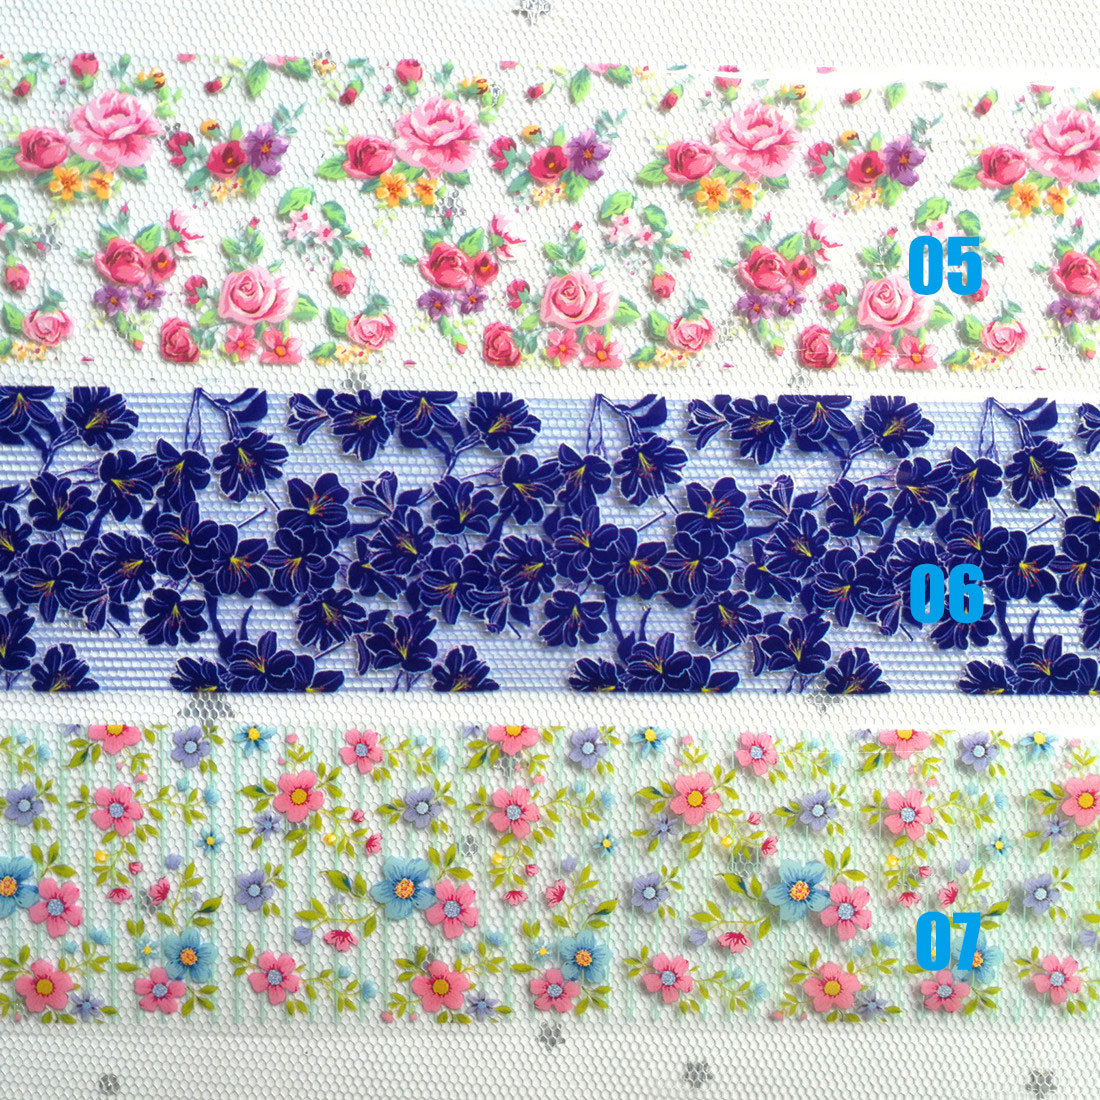 Fashion 3D Decor Colorful Flower Nail Decal Nail Transfer Foil Starry Sky Nail Art Sticker 05